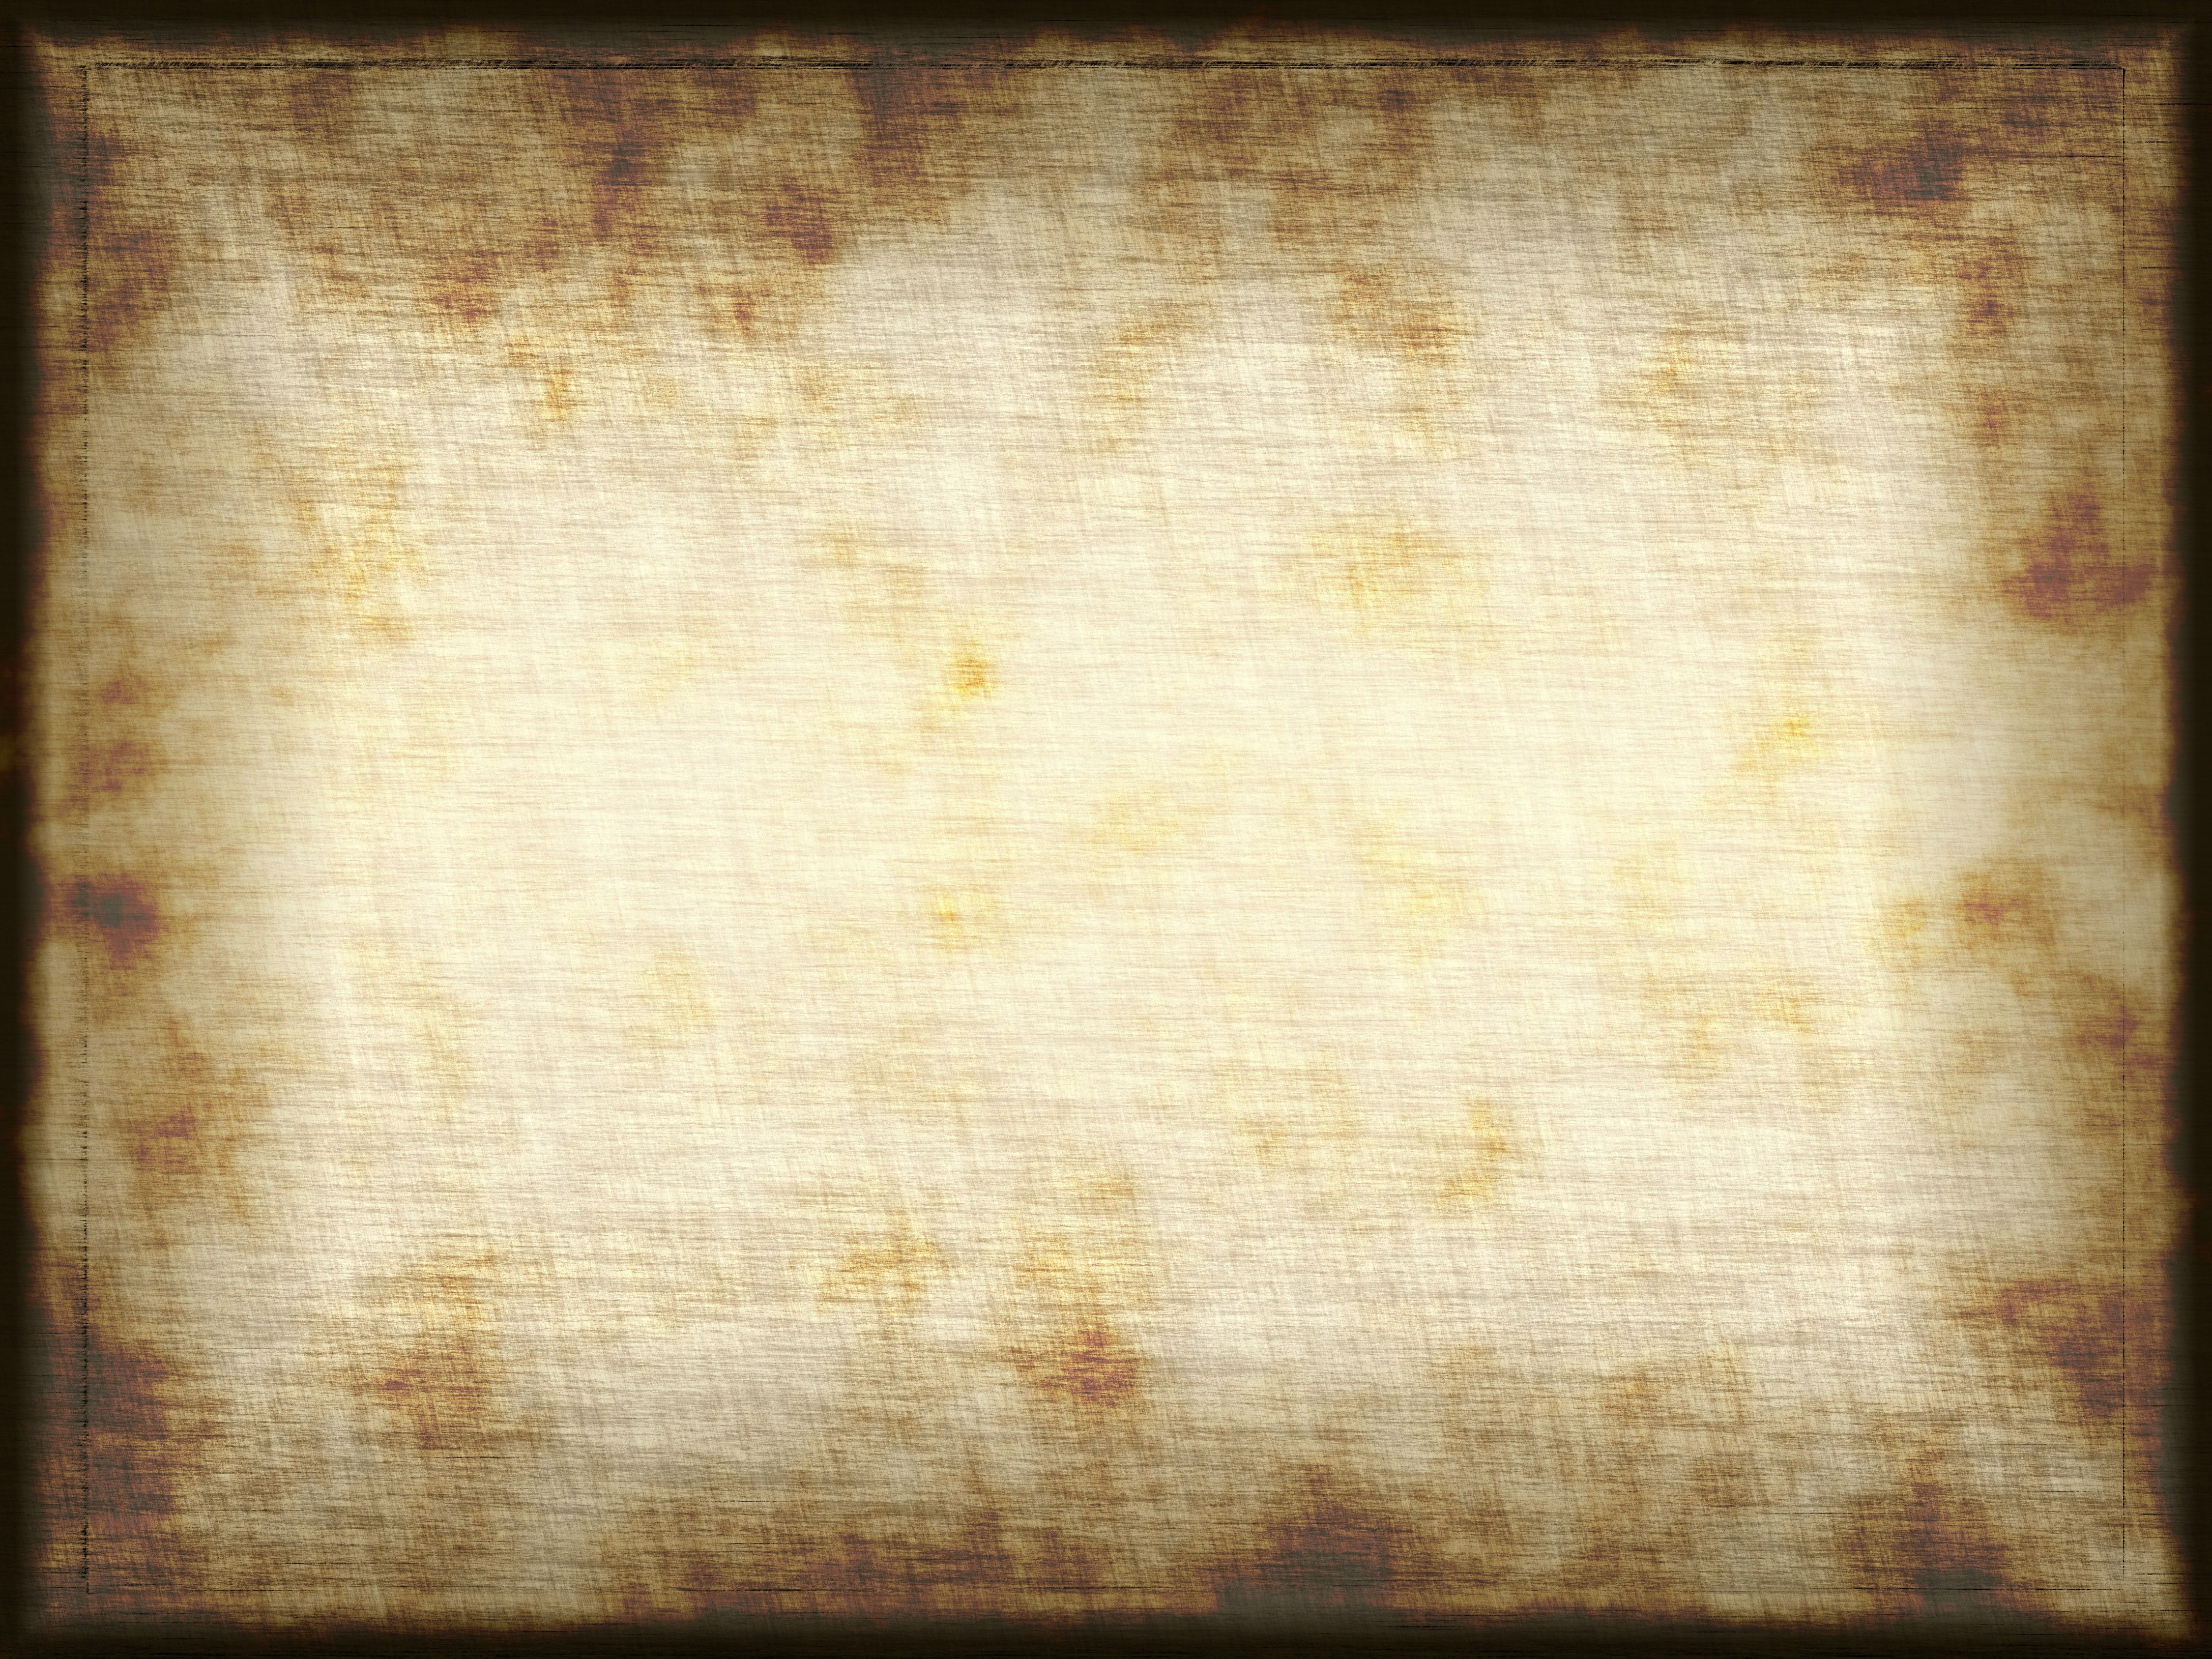 old and worn parchment paper background